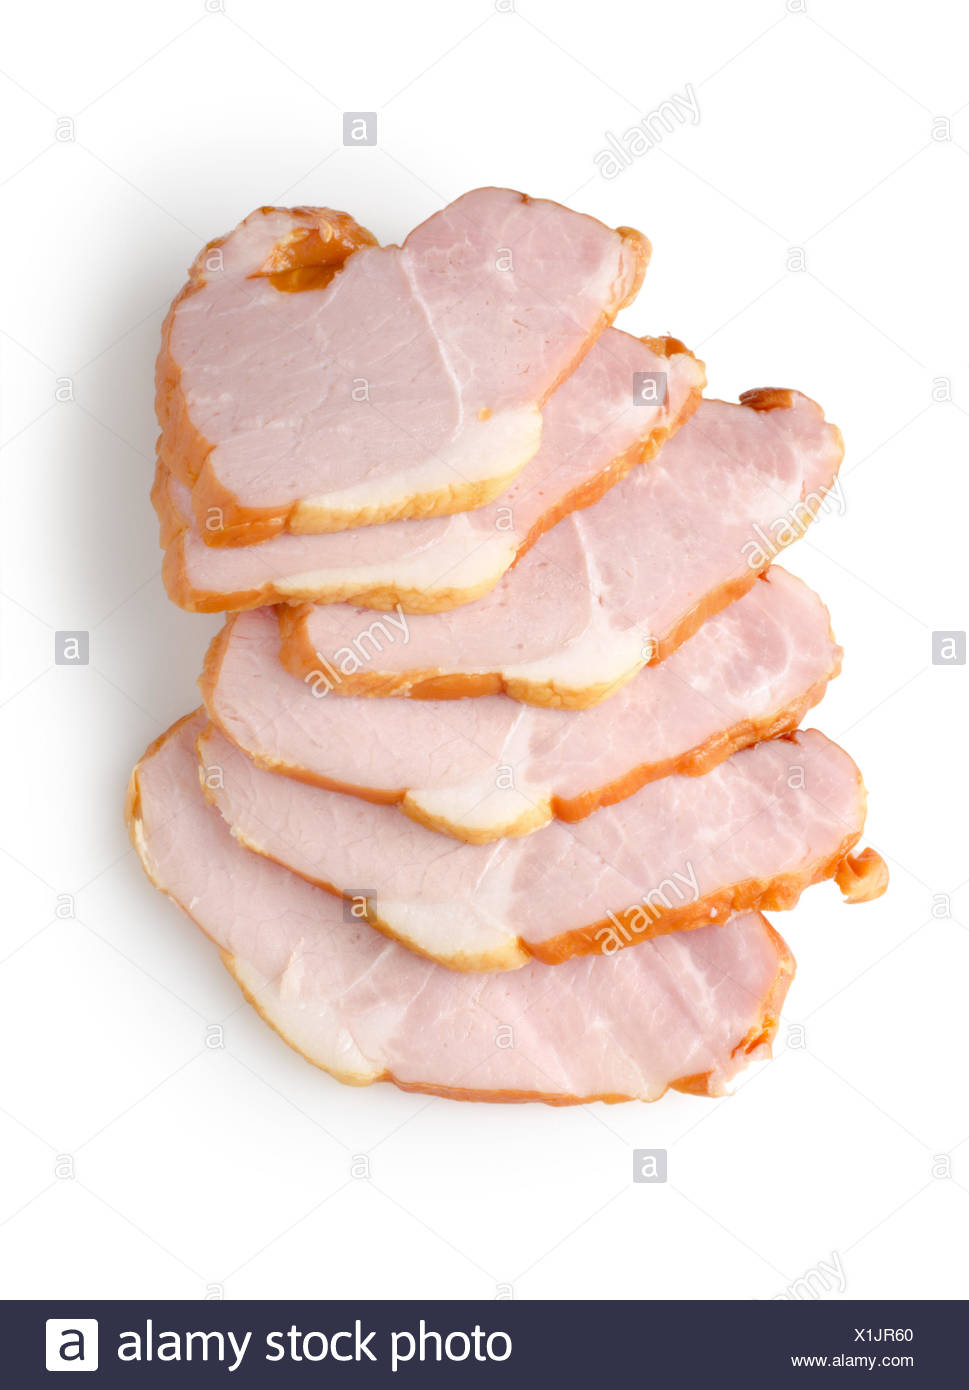 Sliced ham isolated on a white background. - Stock Image